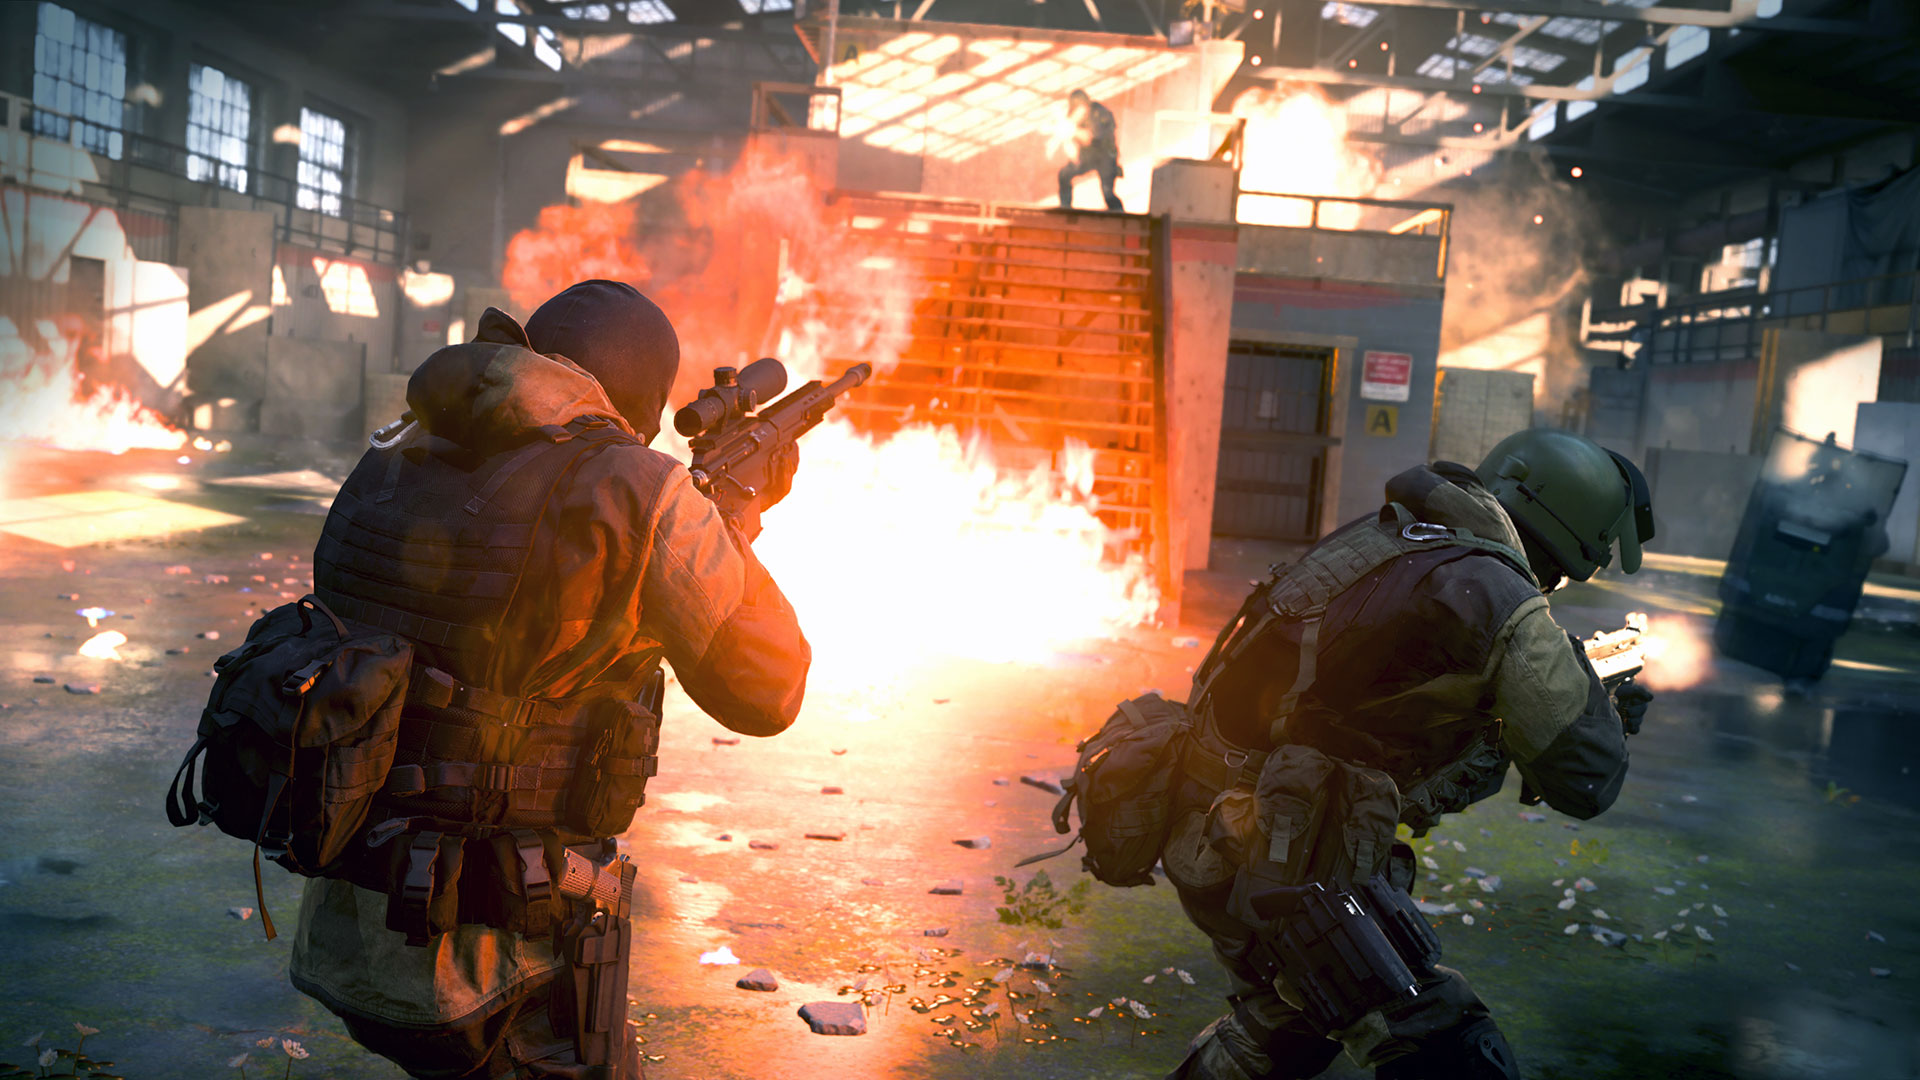 Call of Duty: Modern Warfare: When will Warzone battle royale go live? - App Trigger